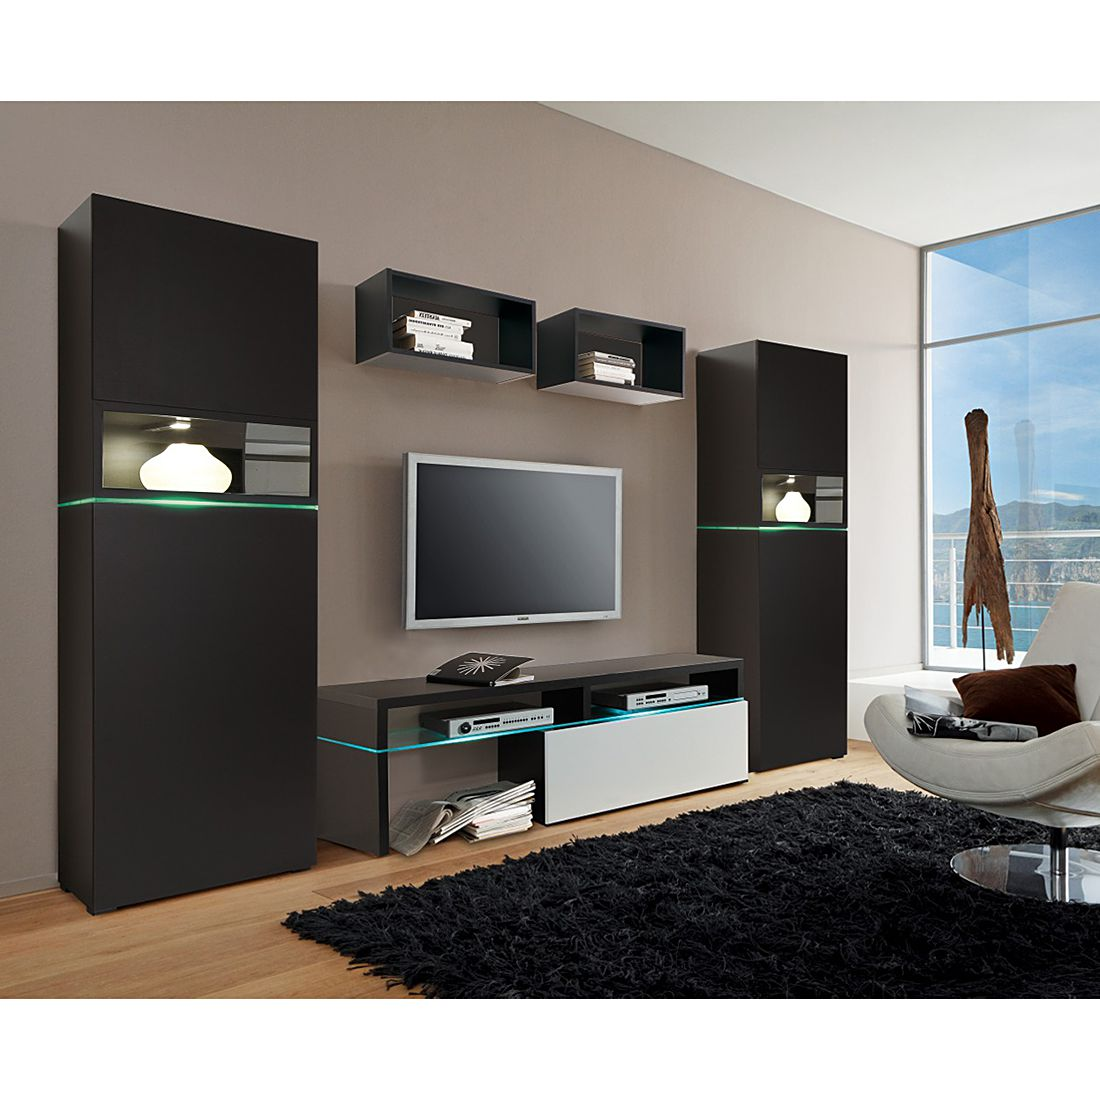 wohnwand colourart 5 teilig eiche sonoma tr ffel. Black Bedroom Furniture Sets. Home Design Ideas